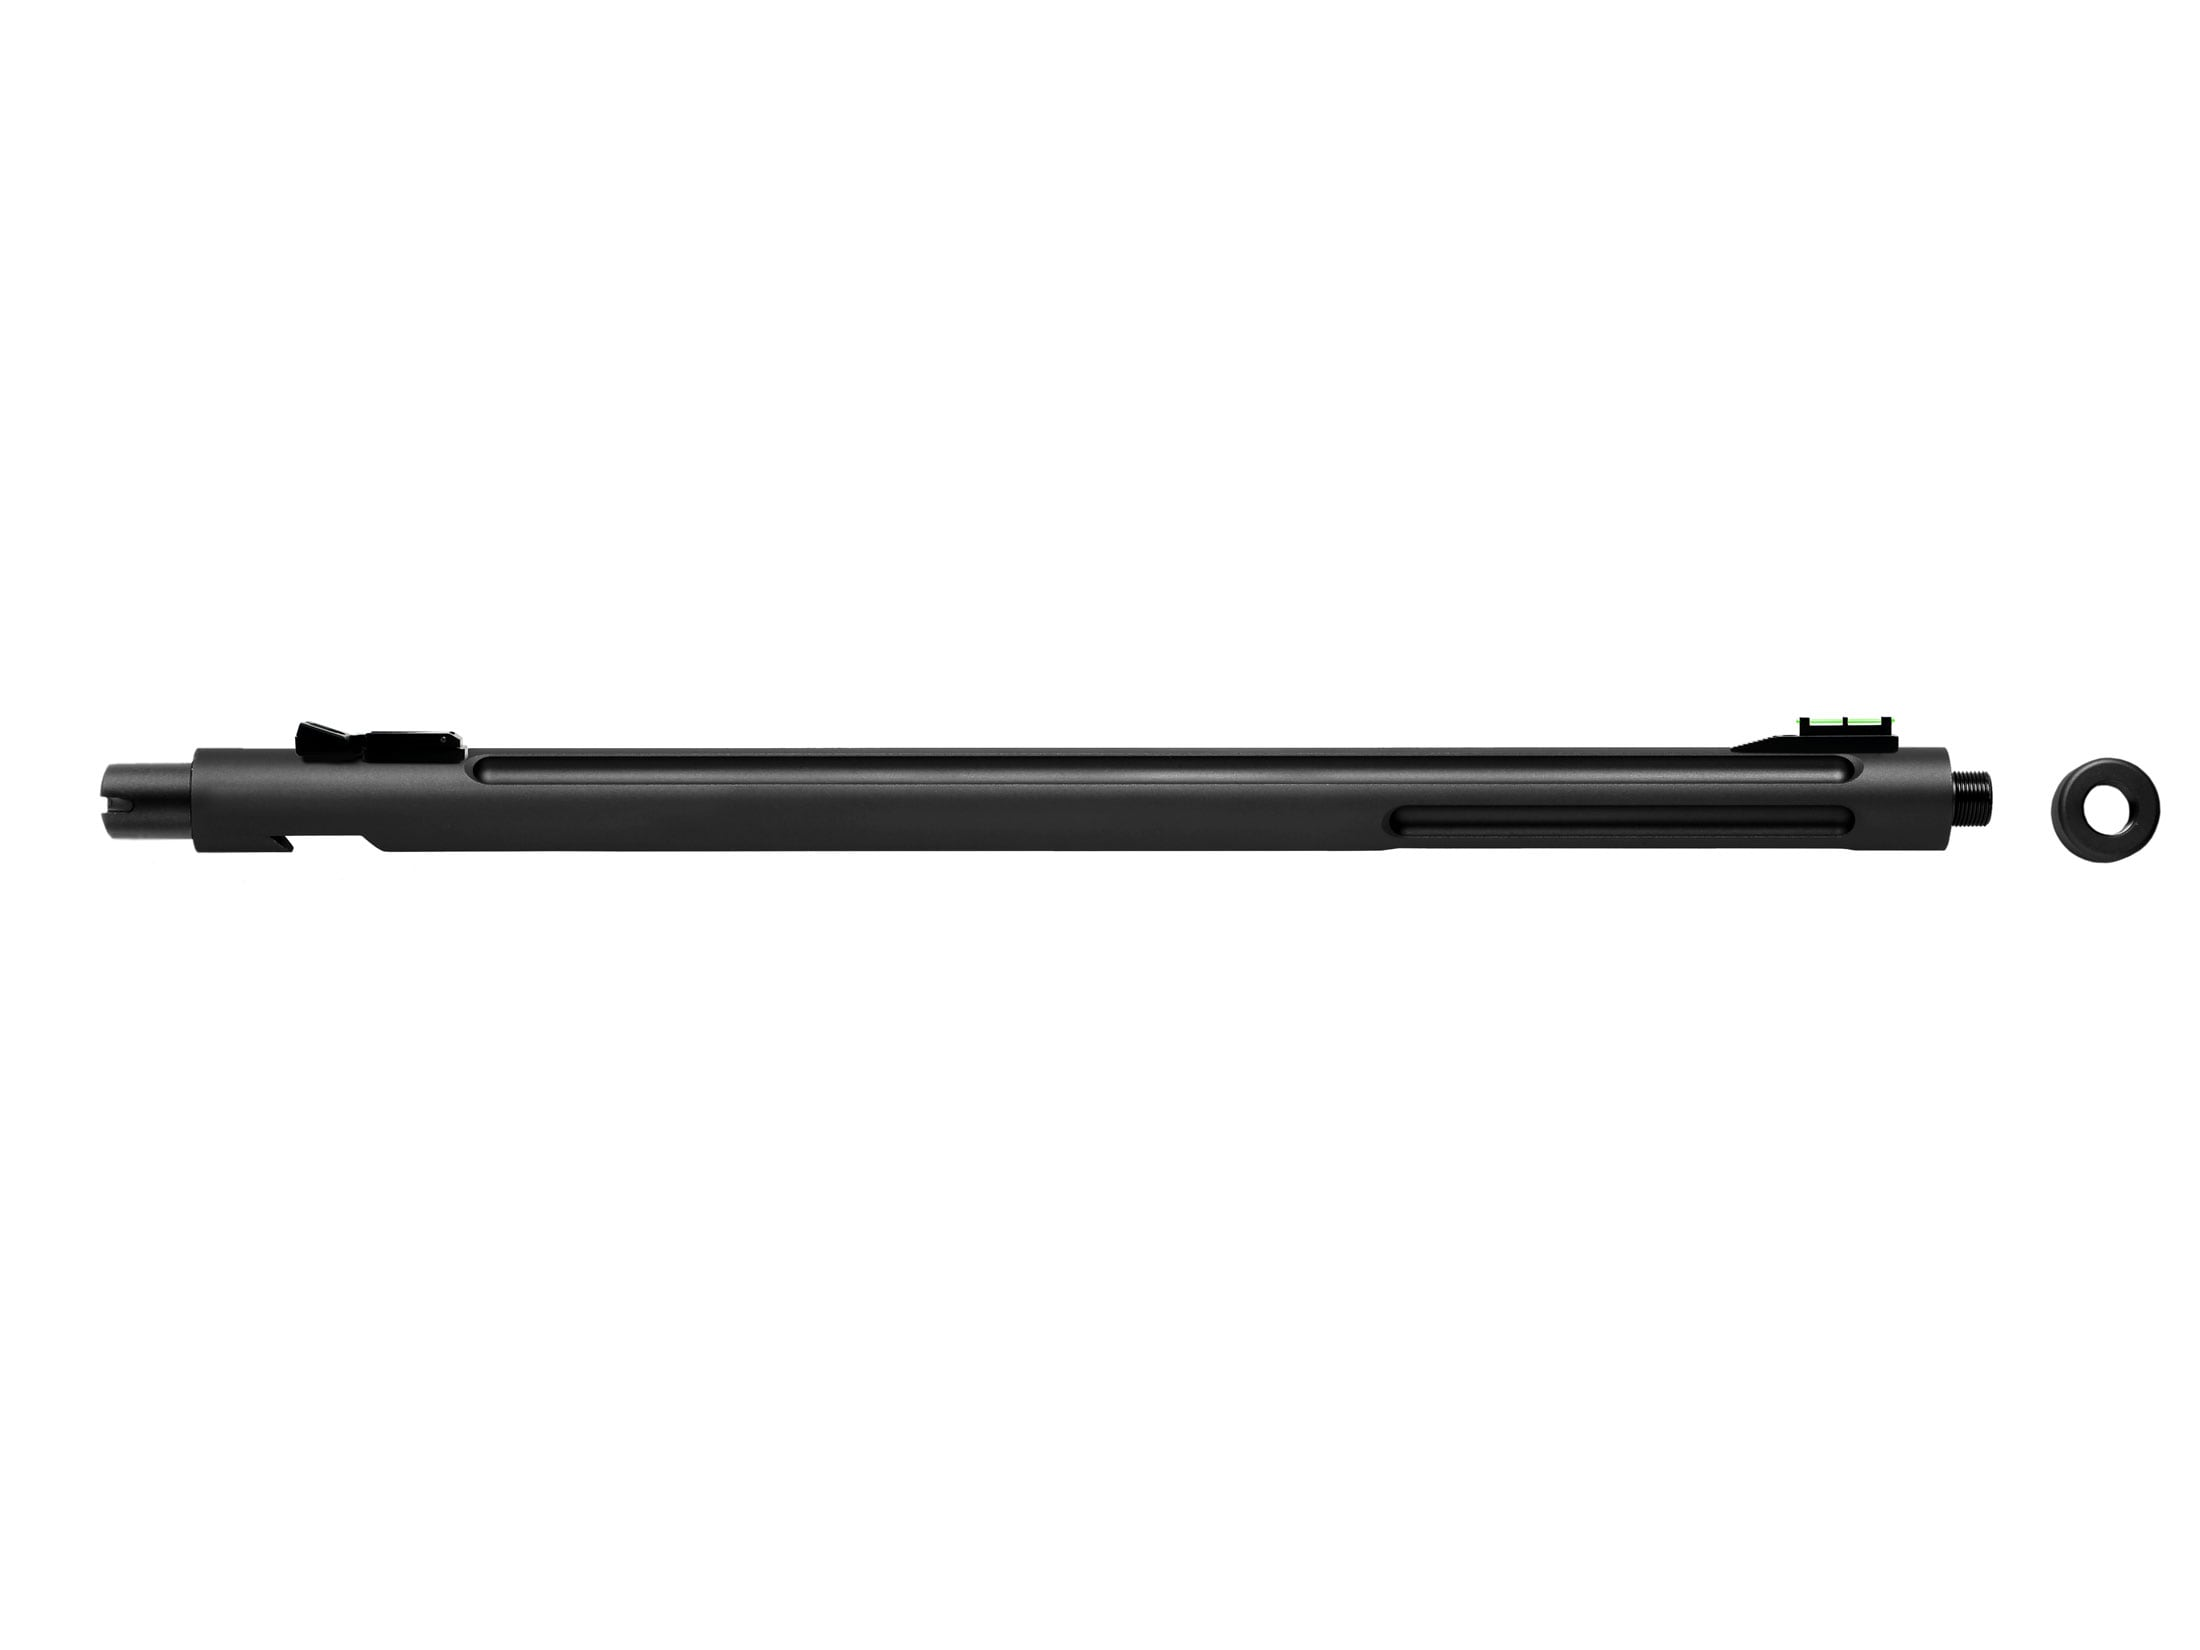 Tactical Solutions X Ring Open Sight Barrel Ruger 10 22 22 Long Rifle